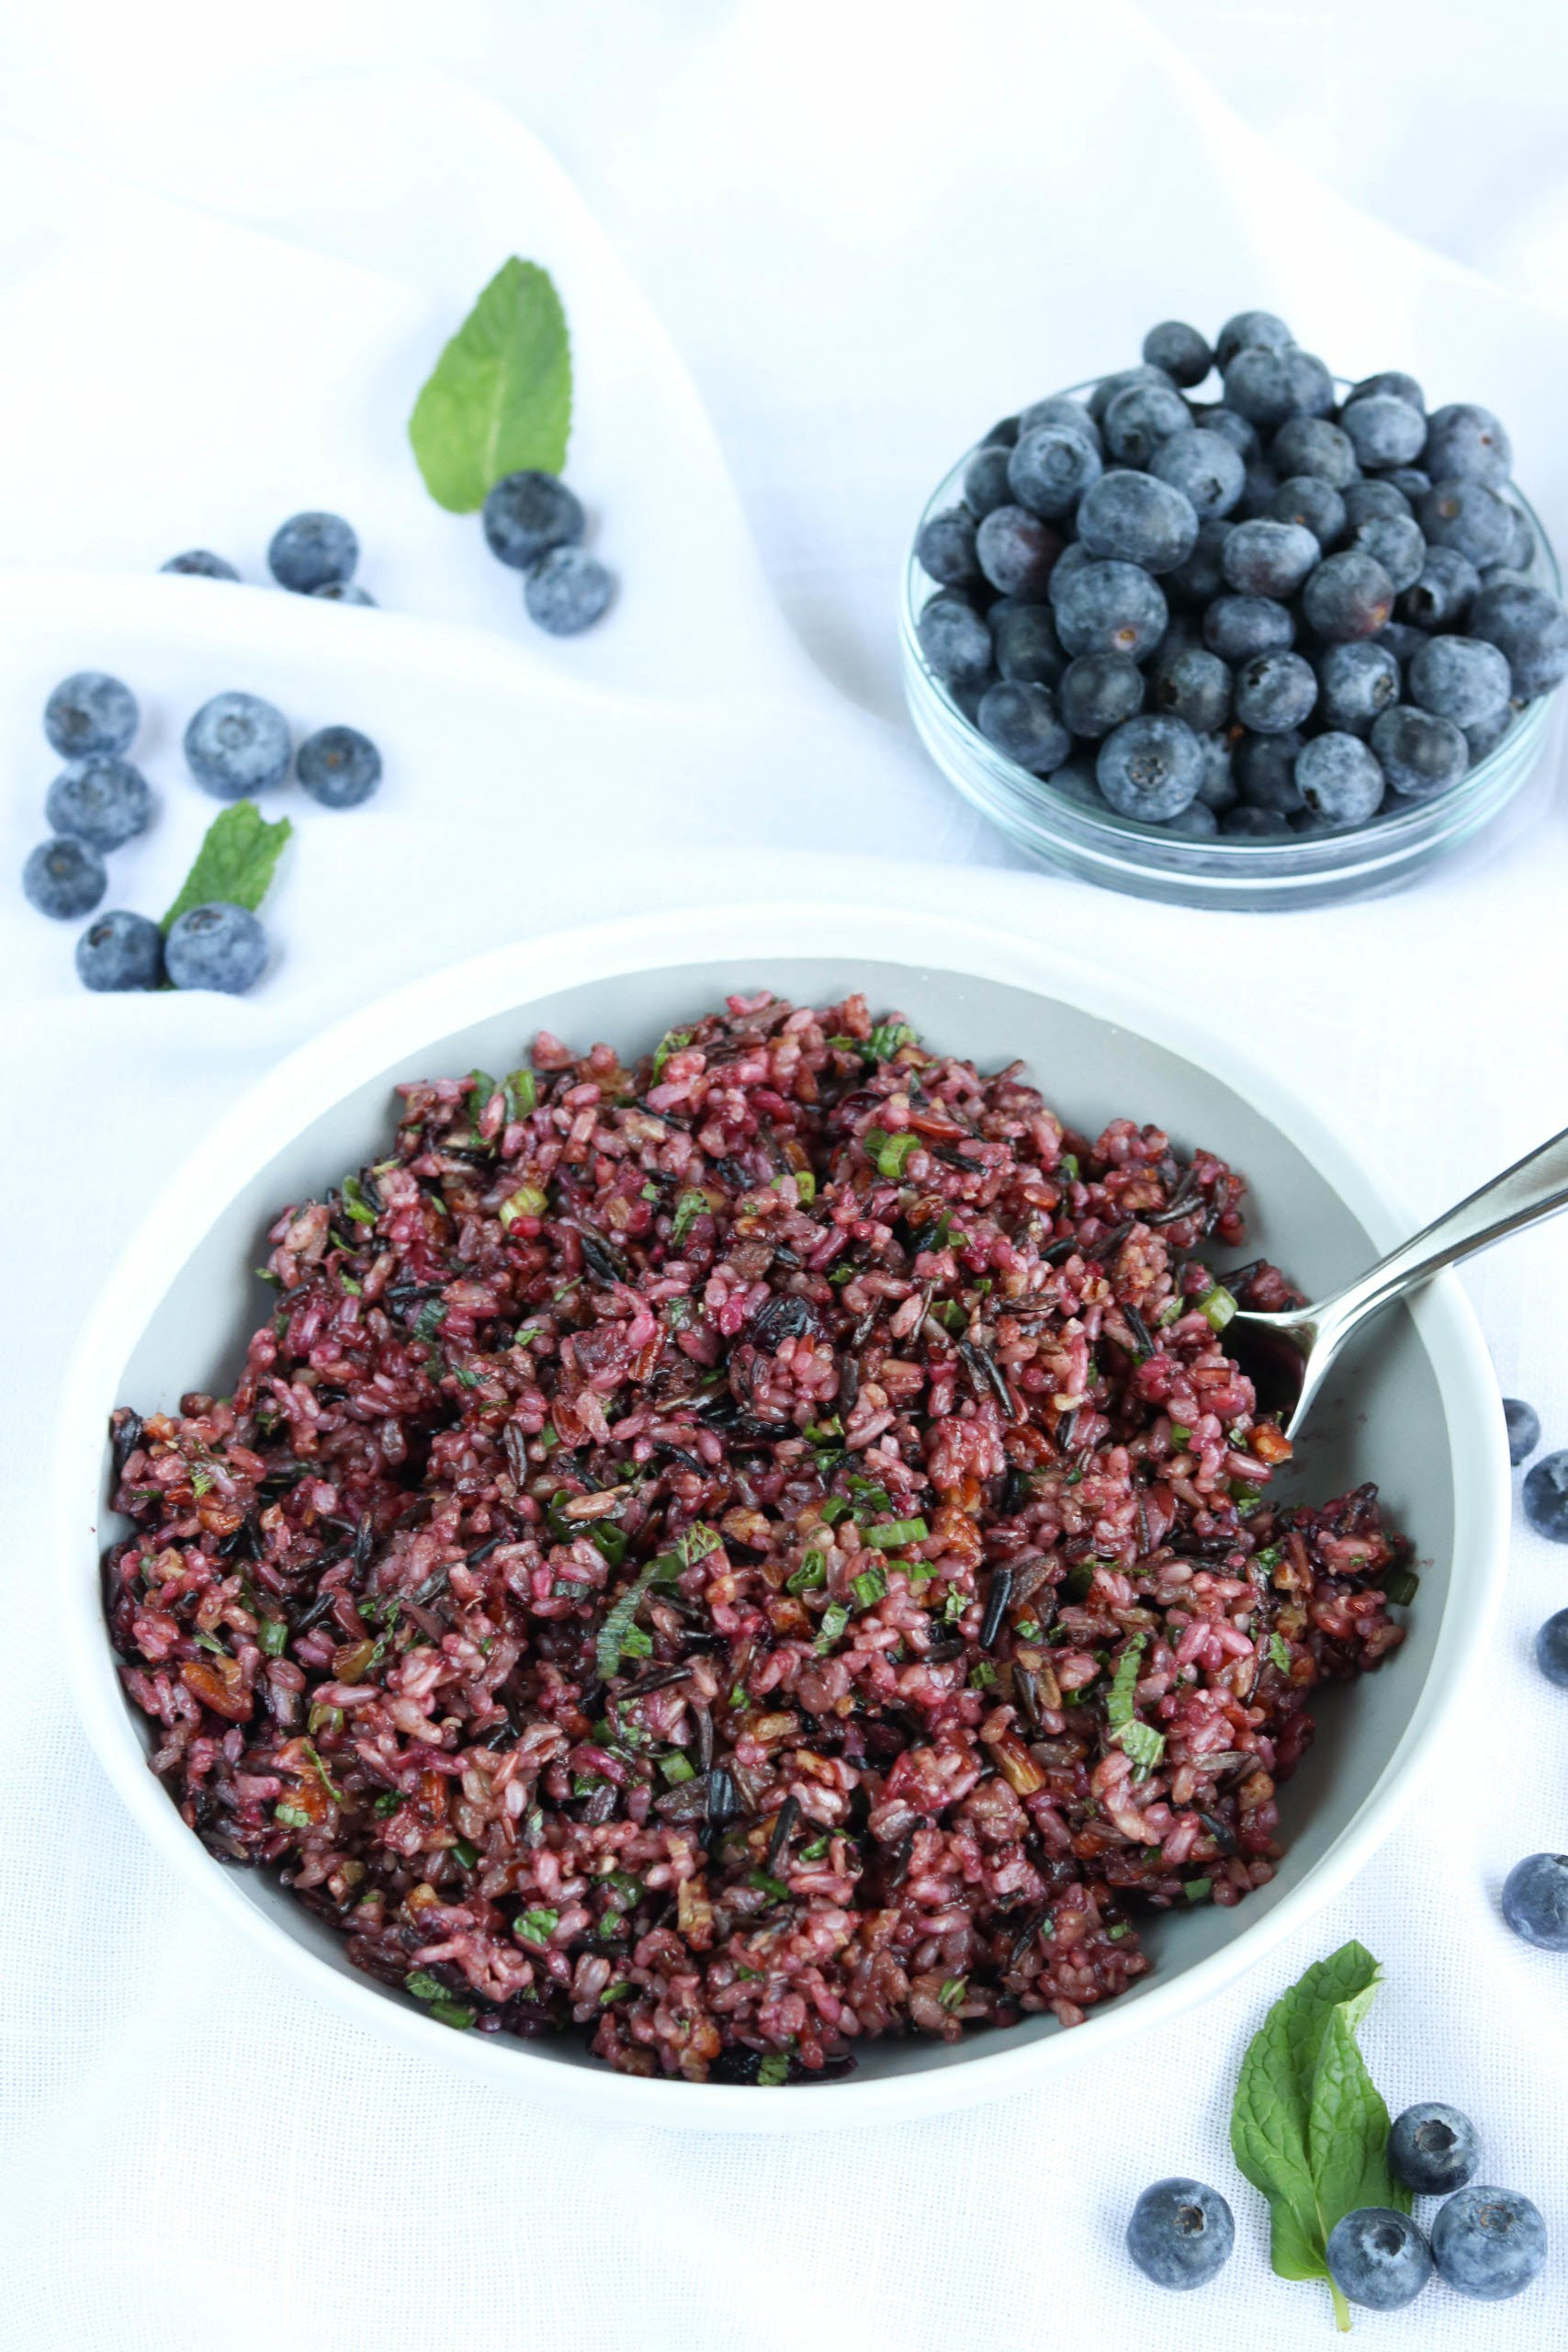 Blueberry Wild Rice Salad with Fresh Blueberries